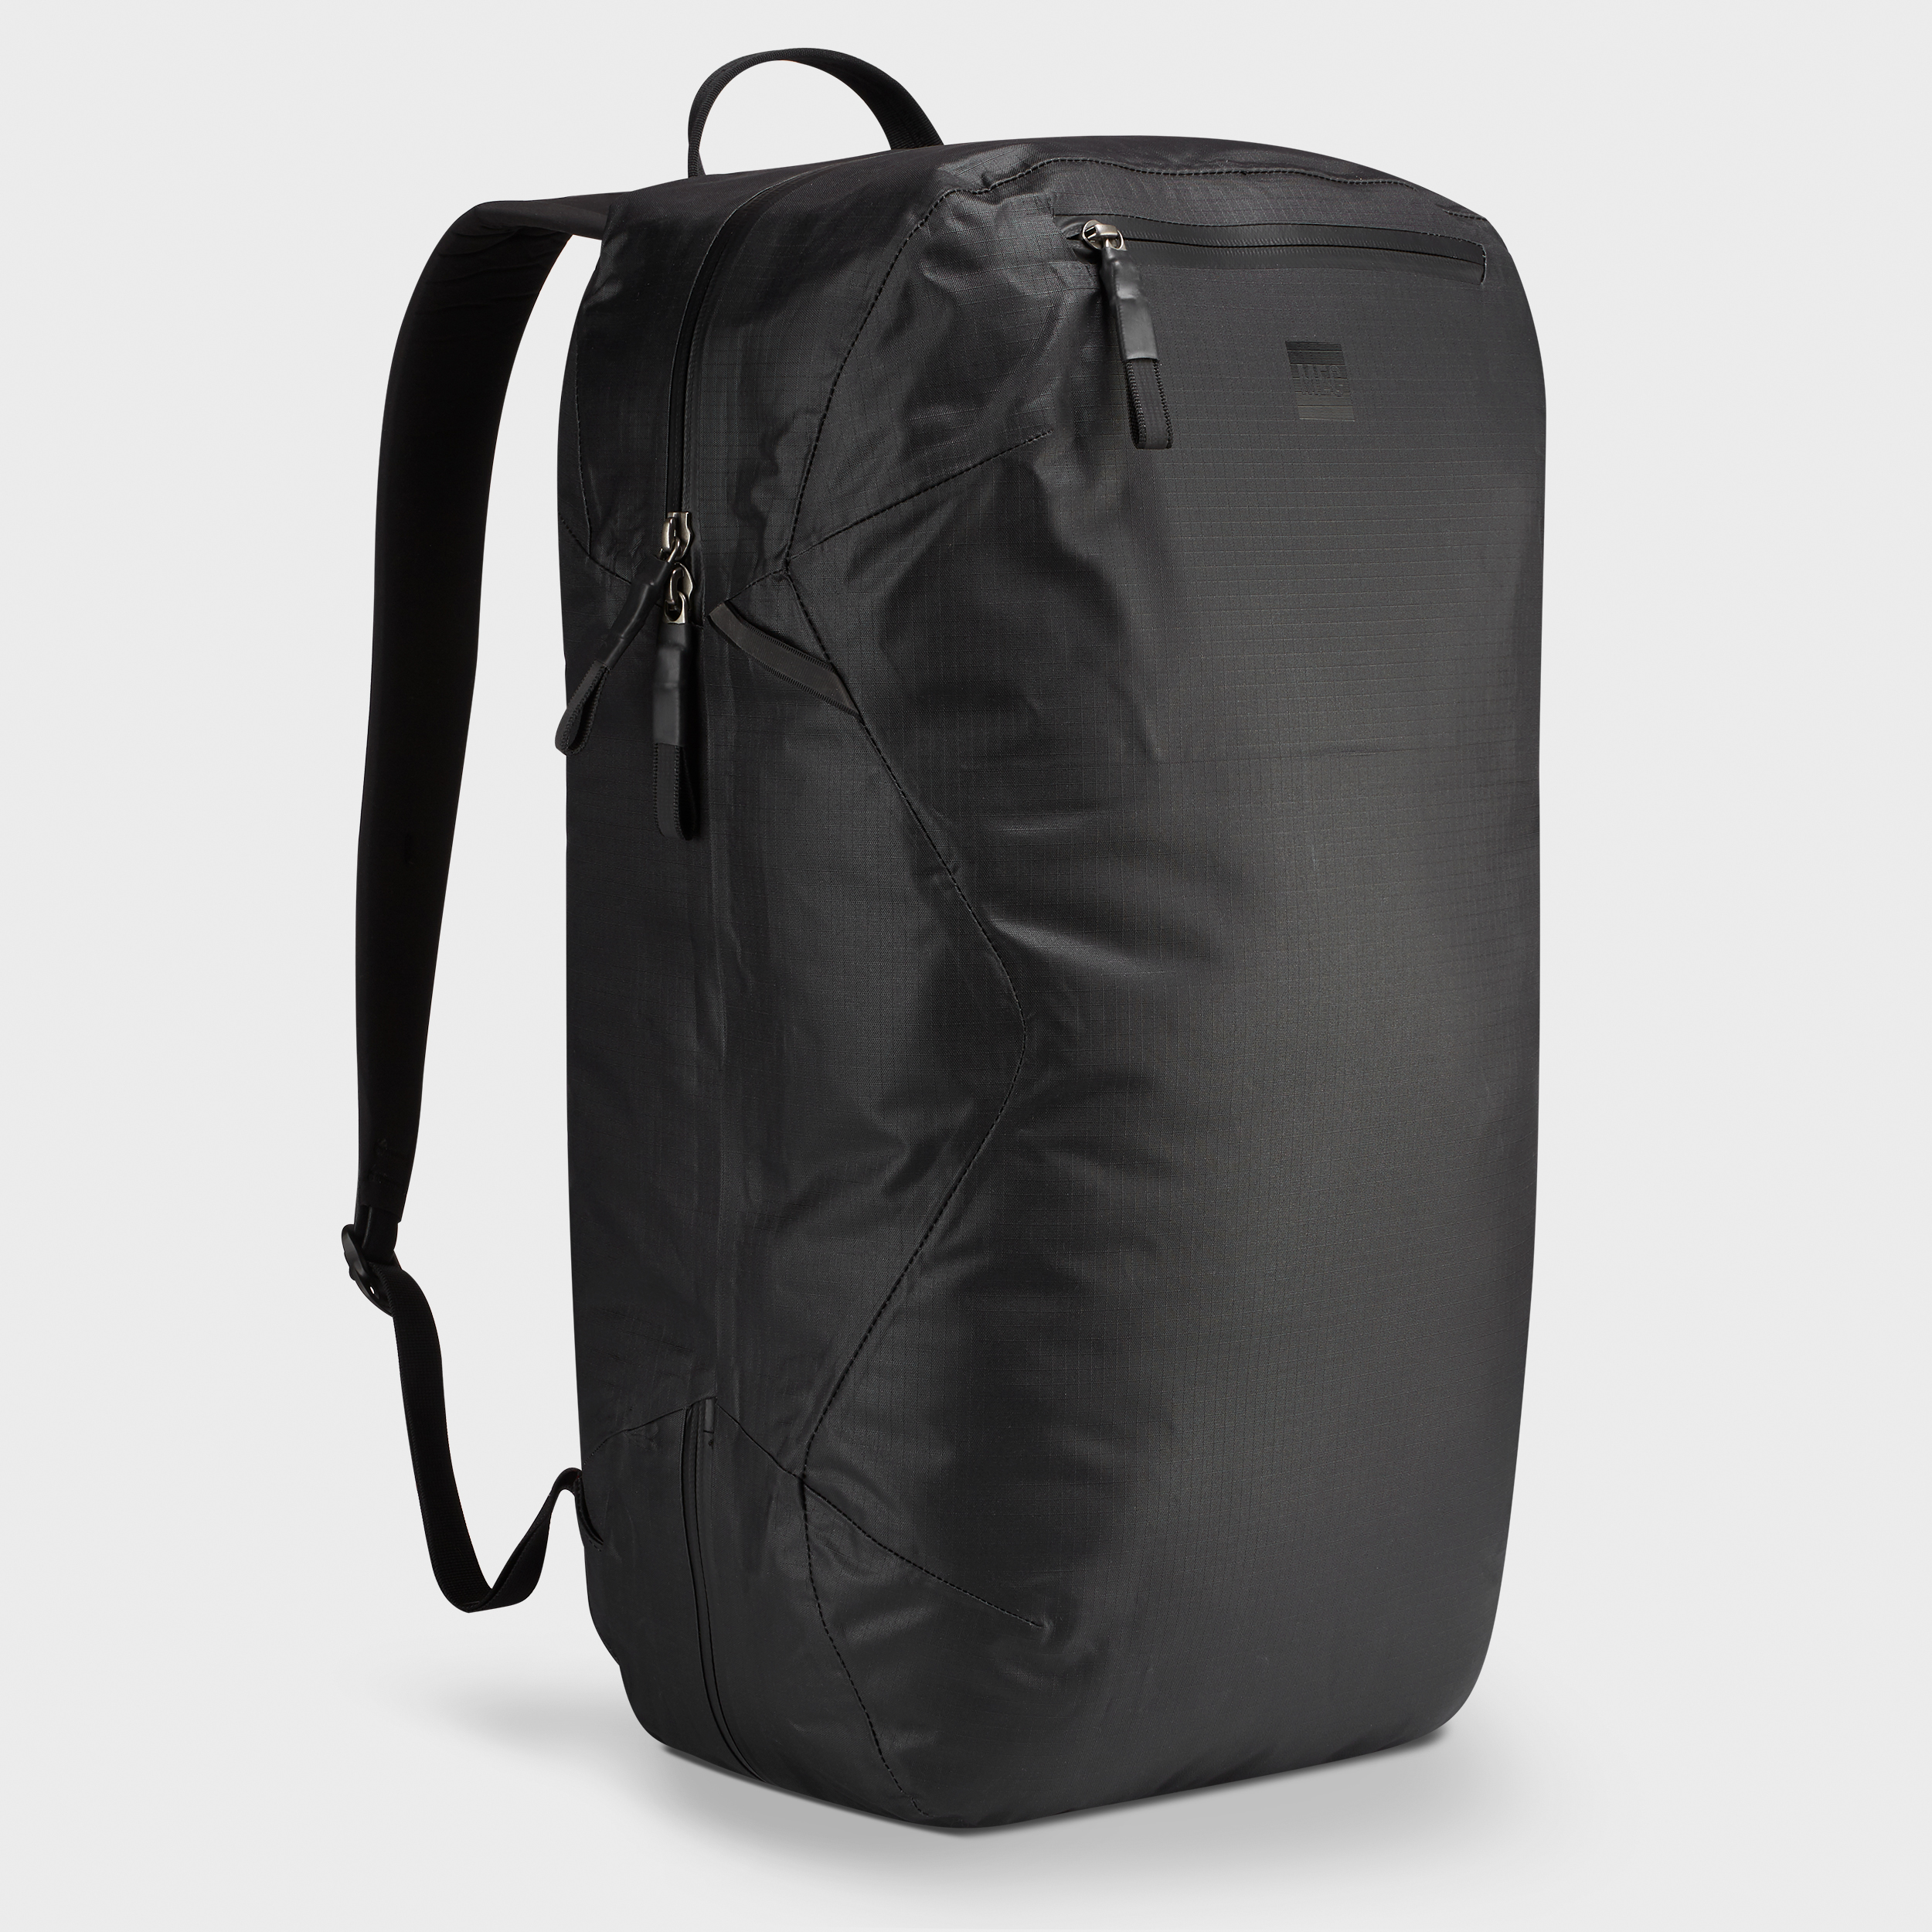 Watch Competition: Win A Tumi Reflective Backpack Carry-On Case video